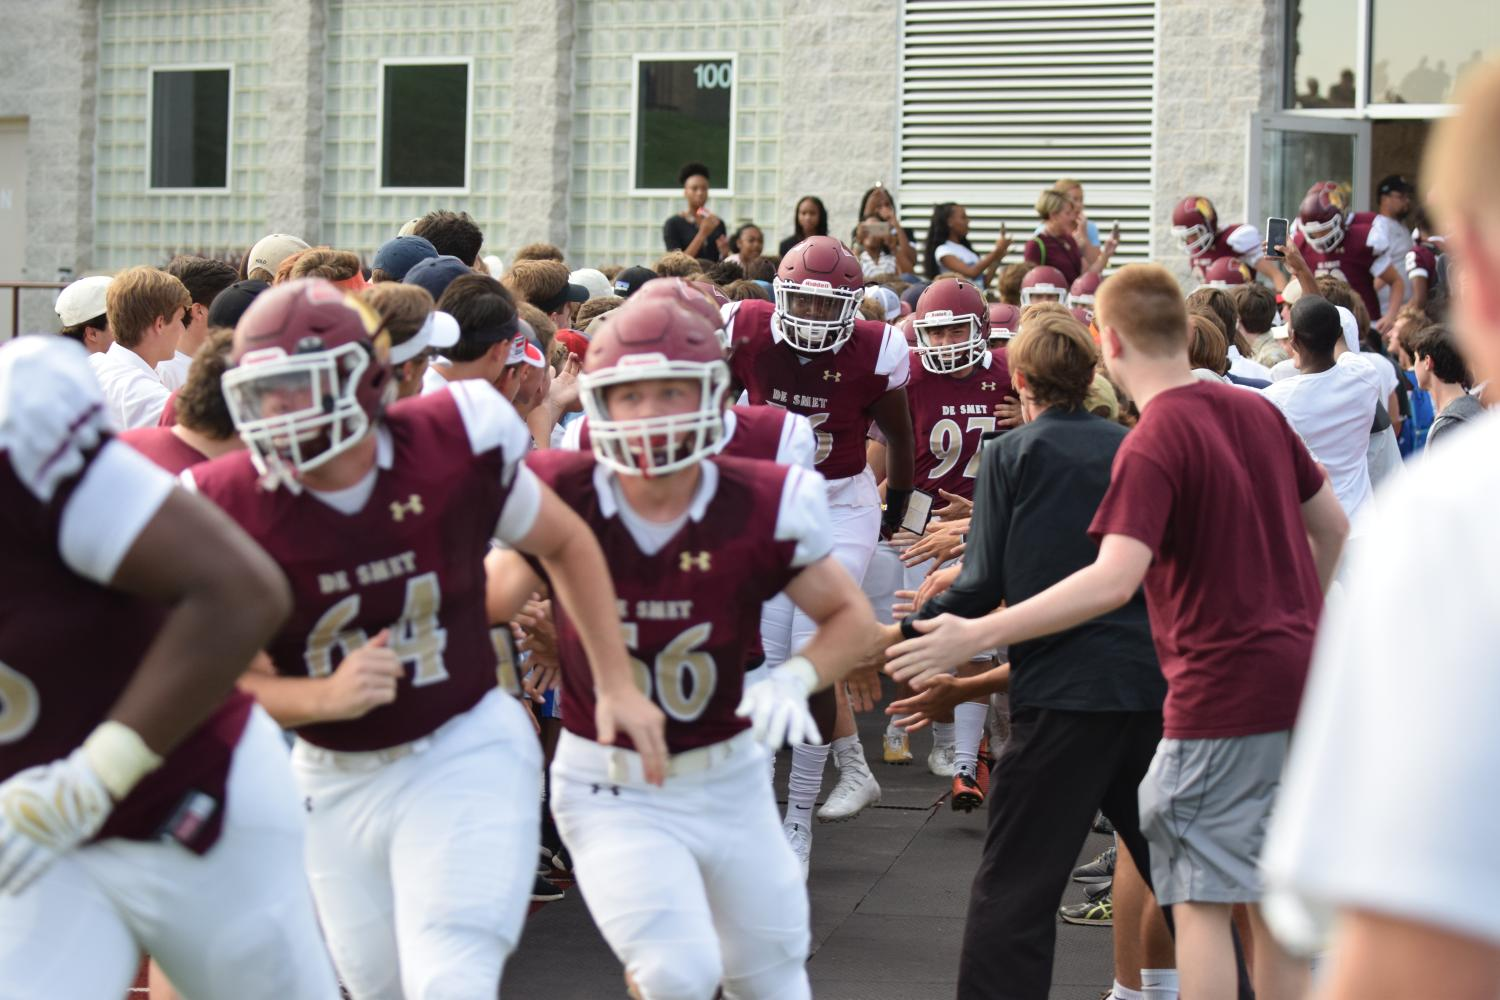 The De Smet football team rushes through the crowd of fans to enter the game.